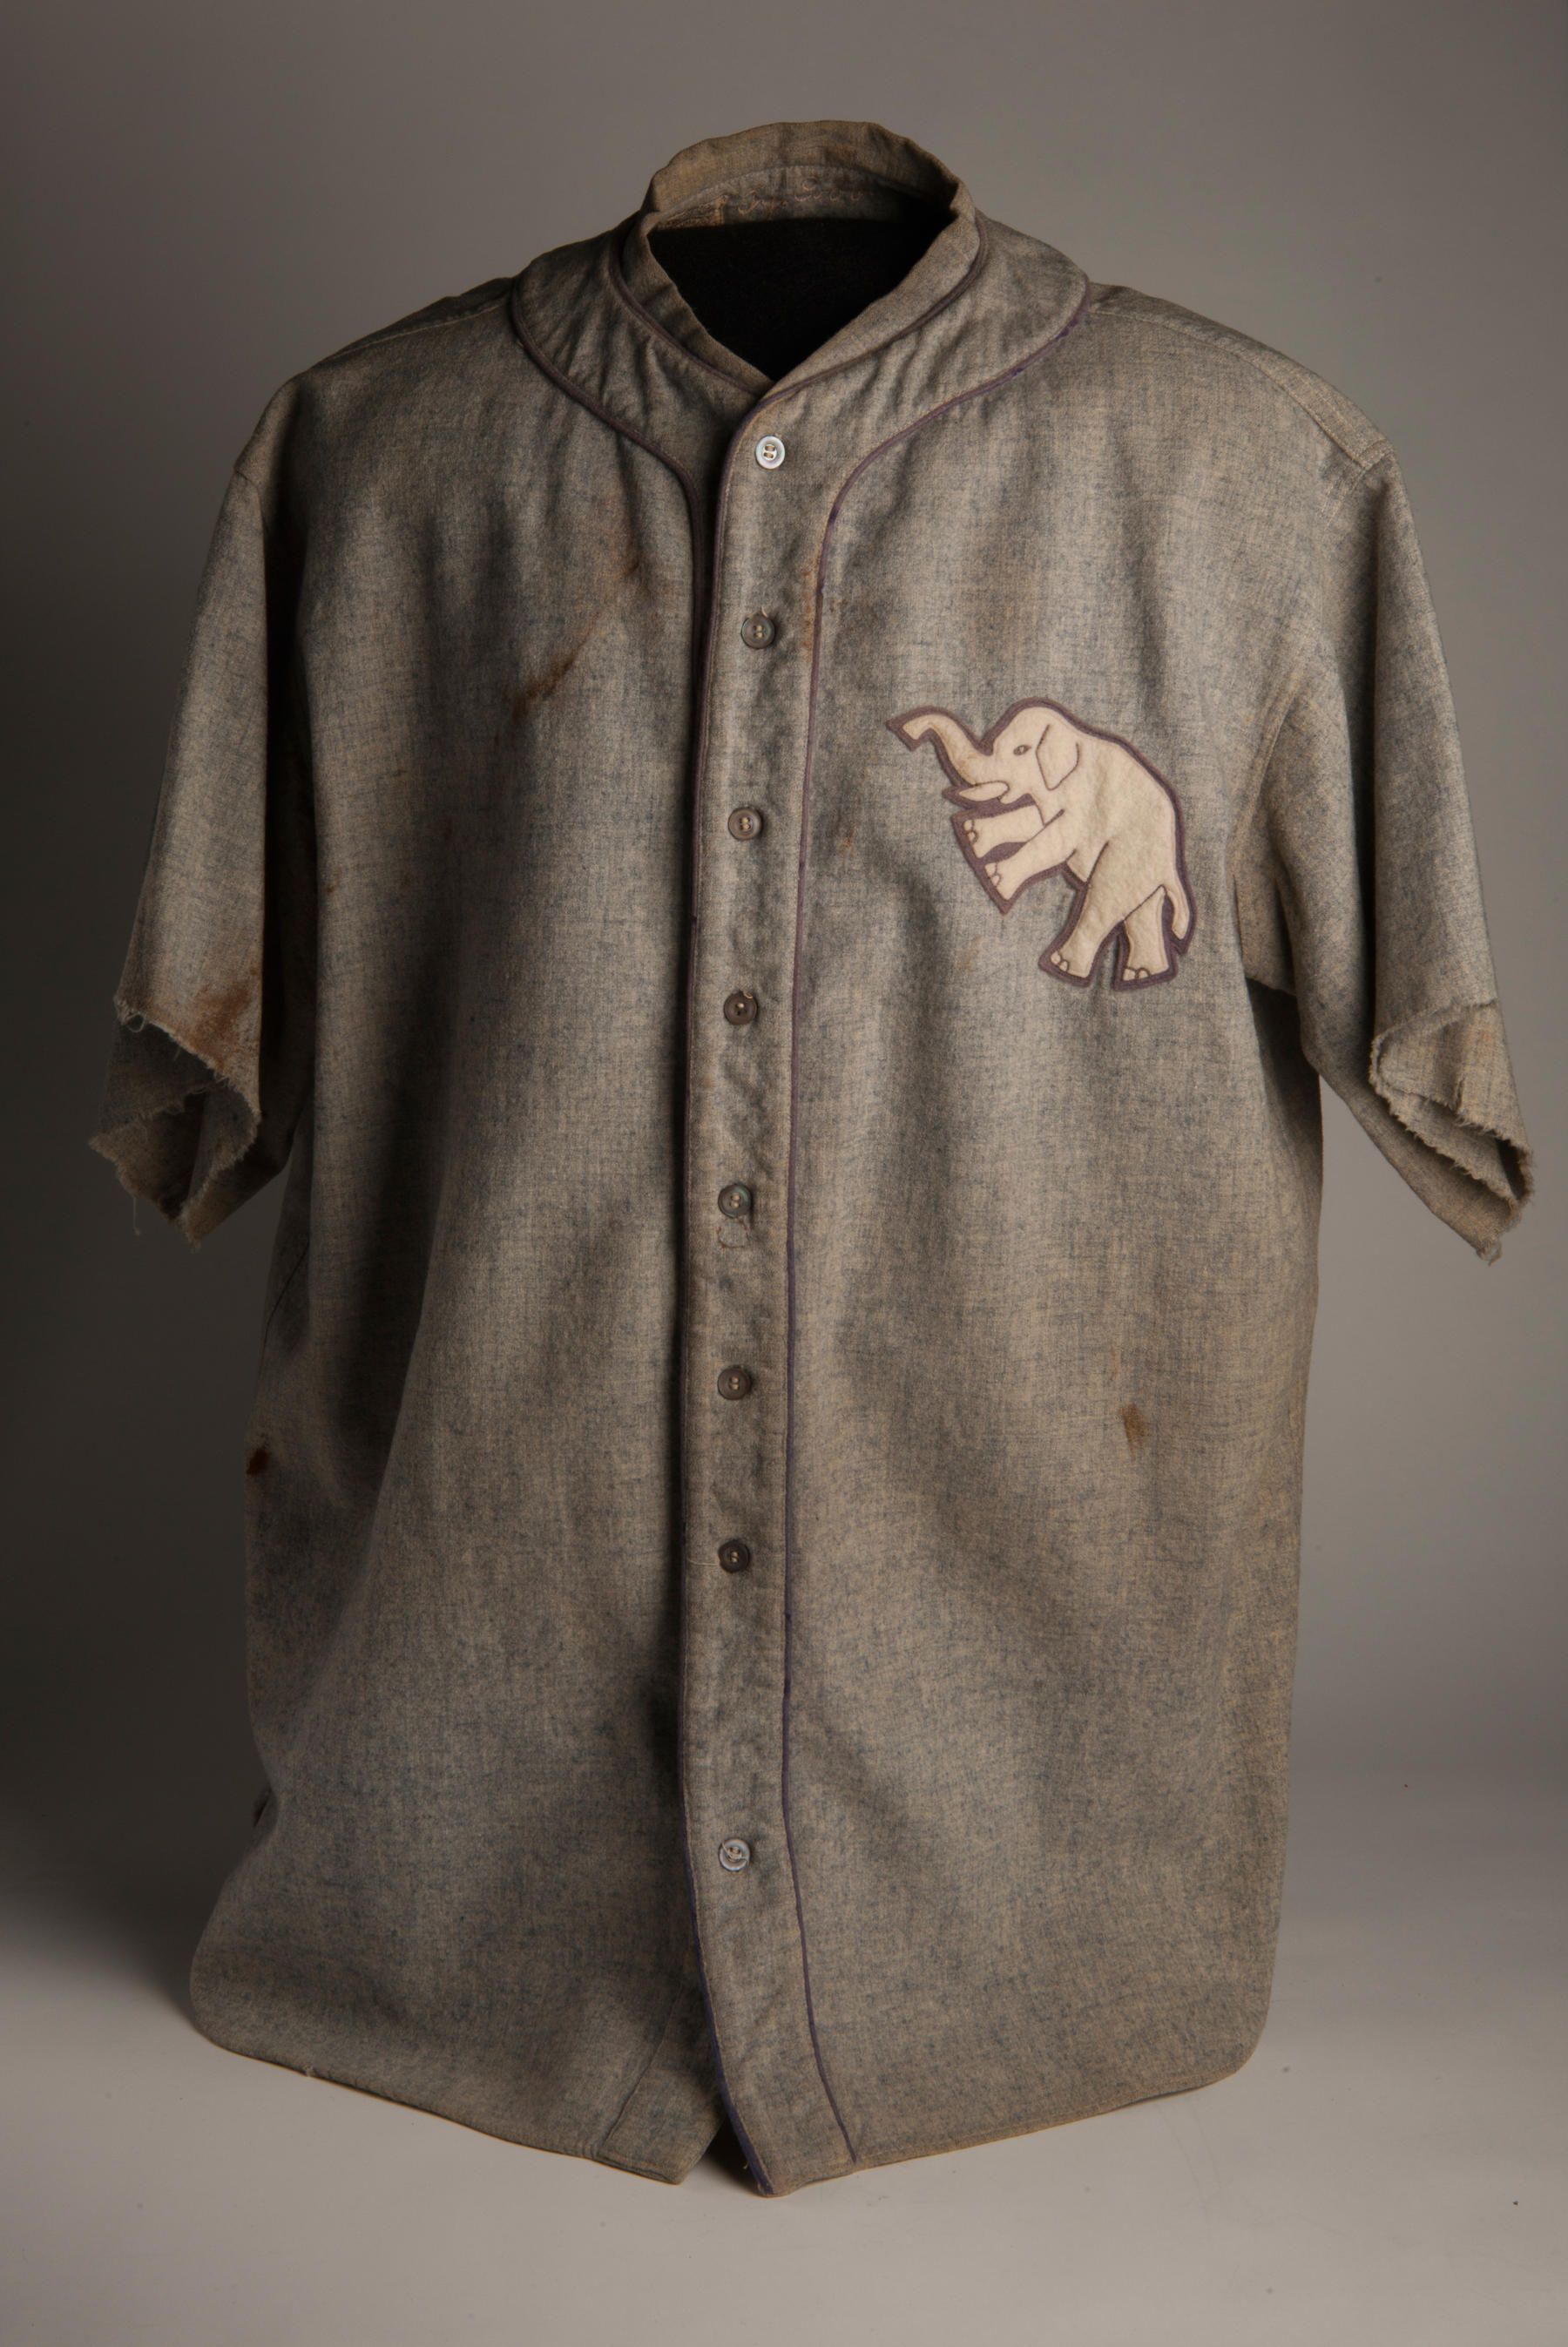 Philadelphia A's uniform shirt worn by Ty Cobb in 1927. B-204-61 (Milo Stewart Jr. / National Baseball Hall of Fame)